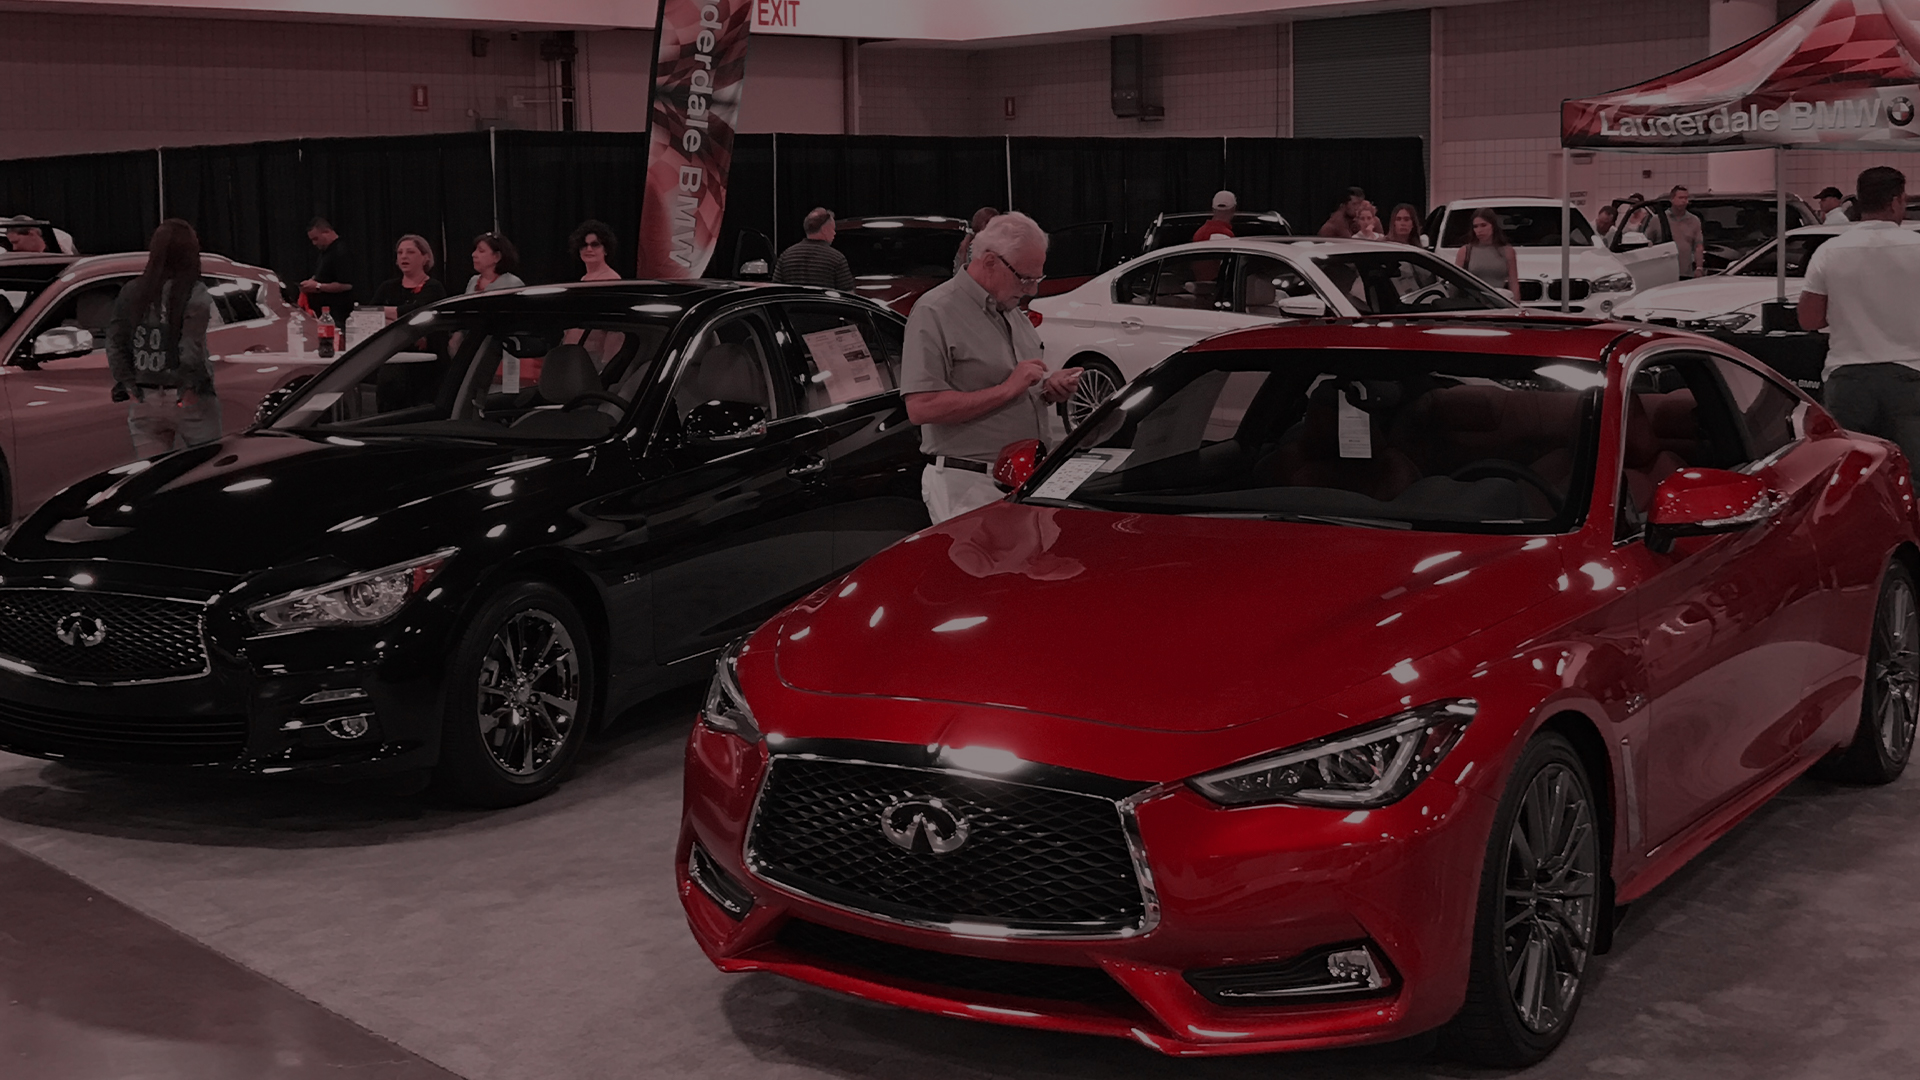 About Fort Lauderdale International Auto Show | Fort